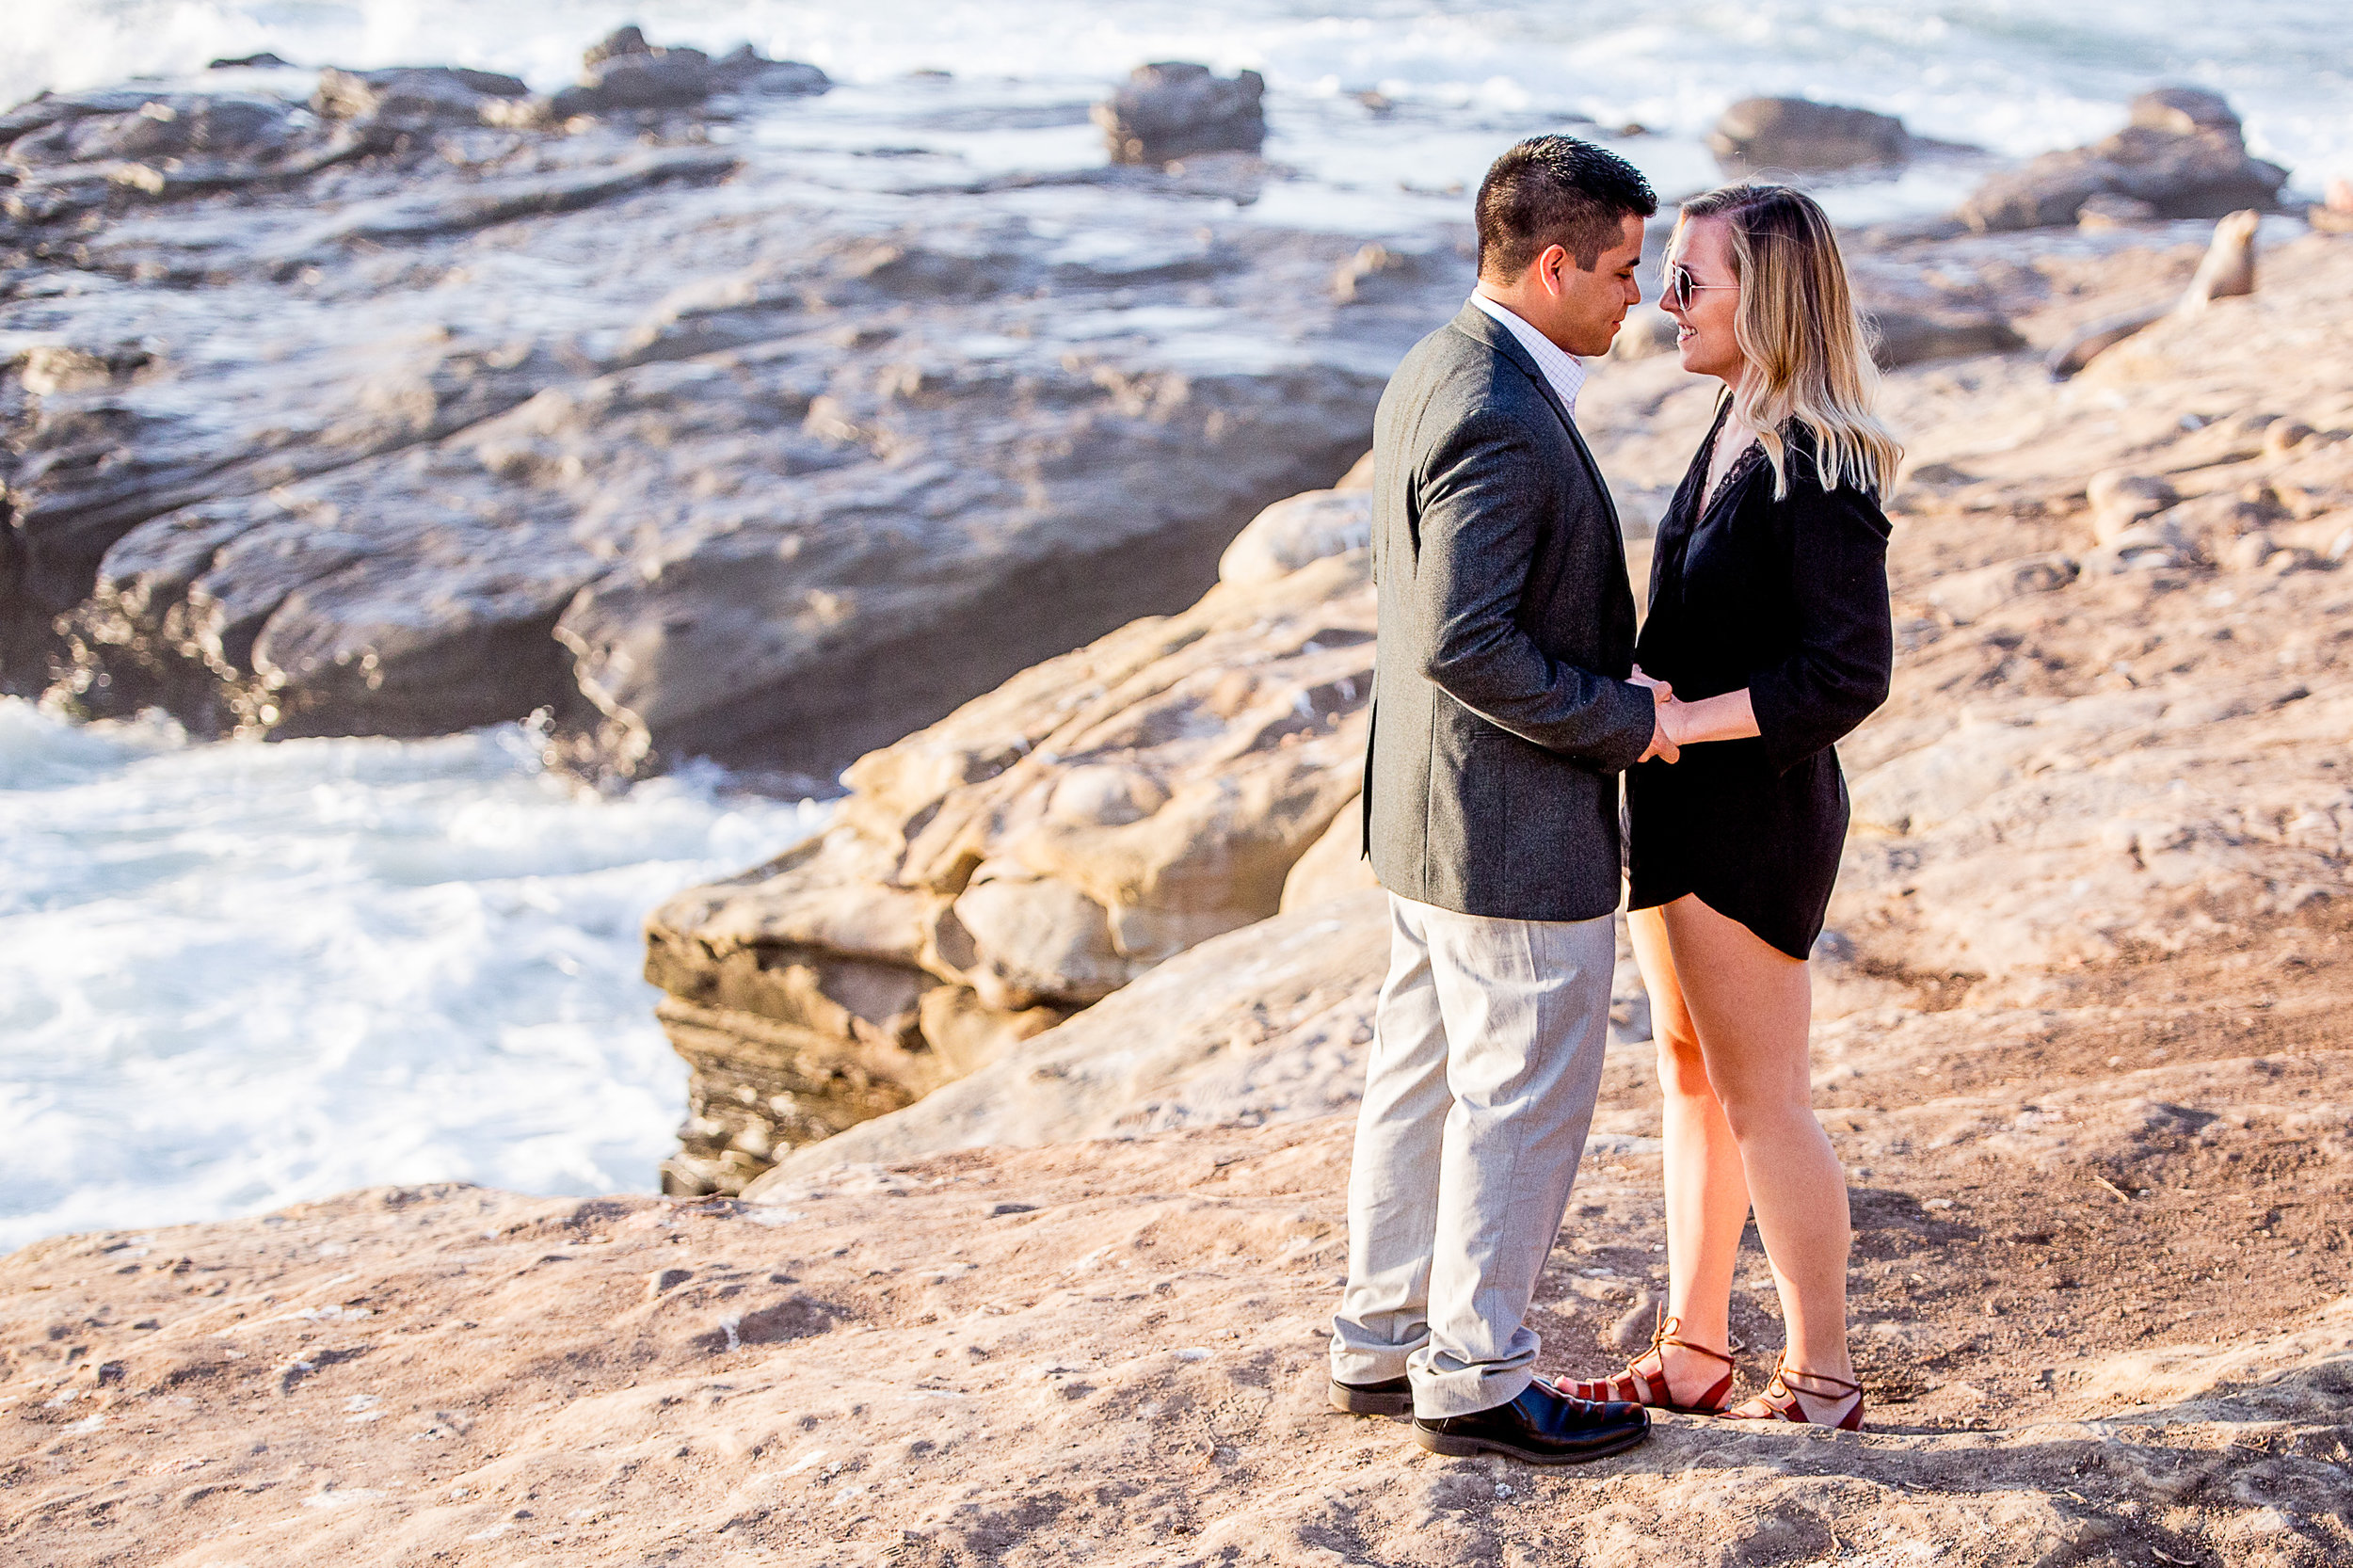 La-jolla-cove-proposal-chicago-natives-san-diego-sunset-golden-hour-love-story-engaged-alligator-head (4 of 158).jpg